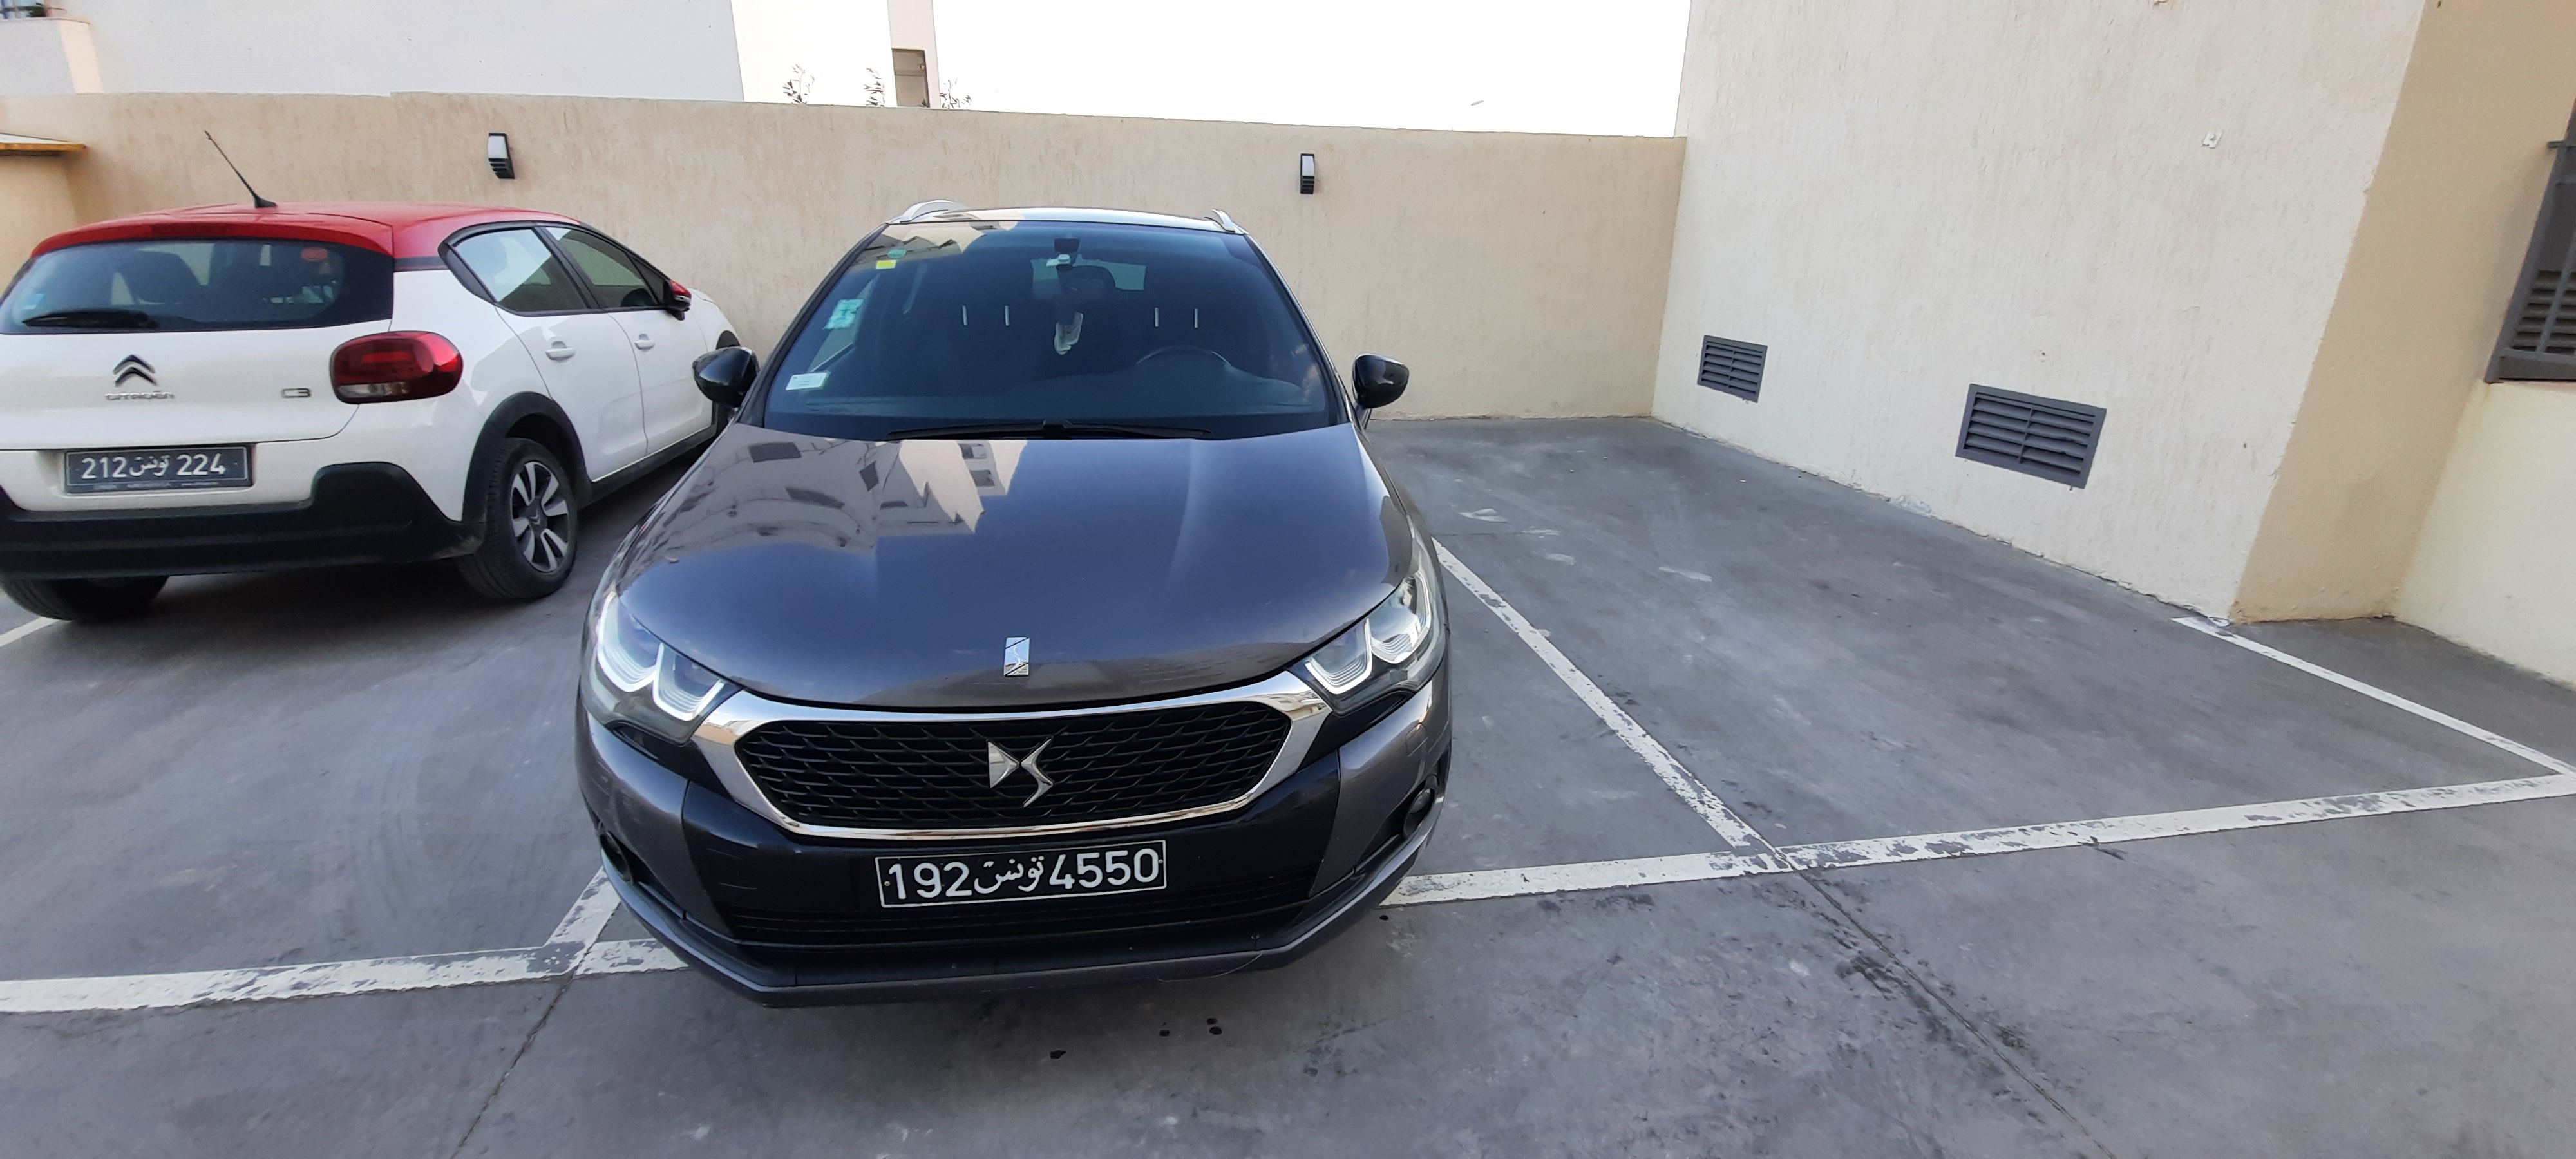 vente voiture occasion tunisie ds 4 crossback